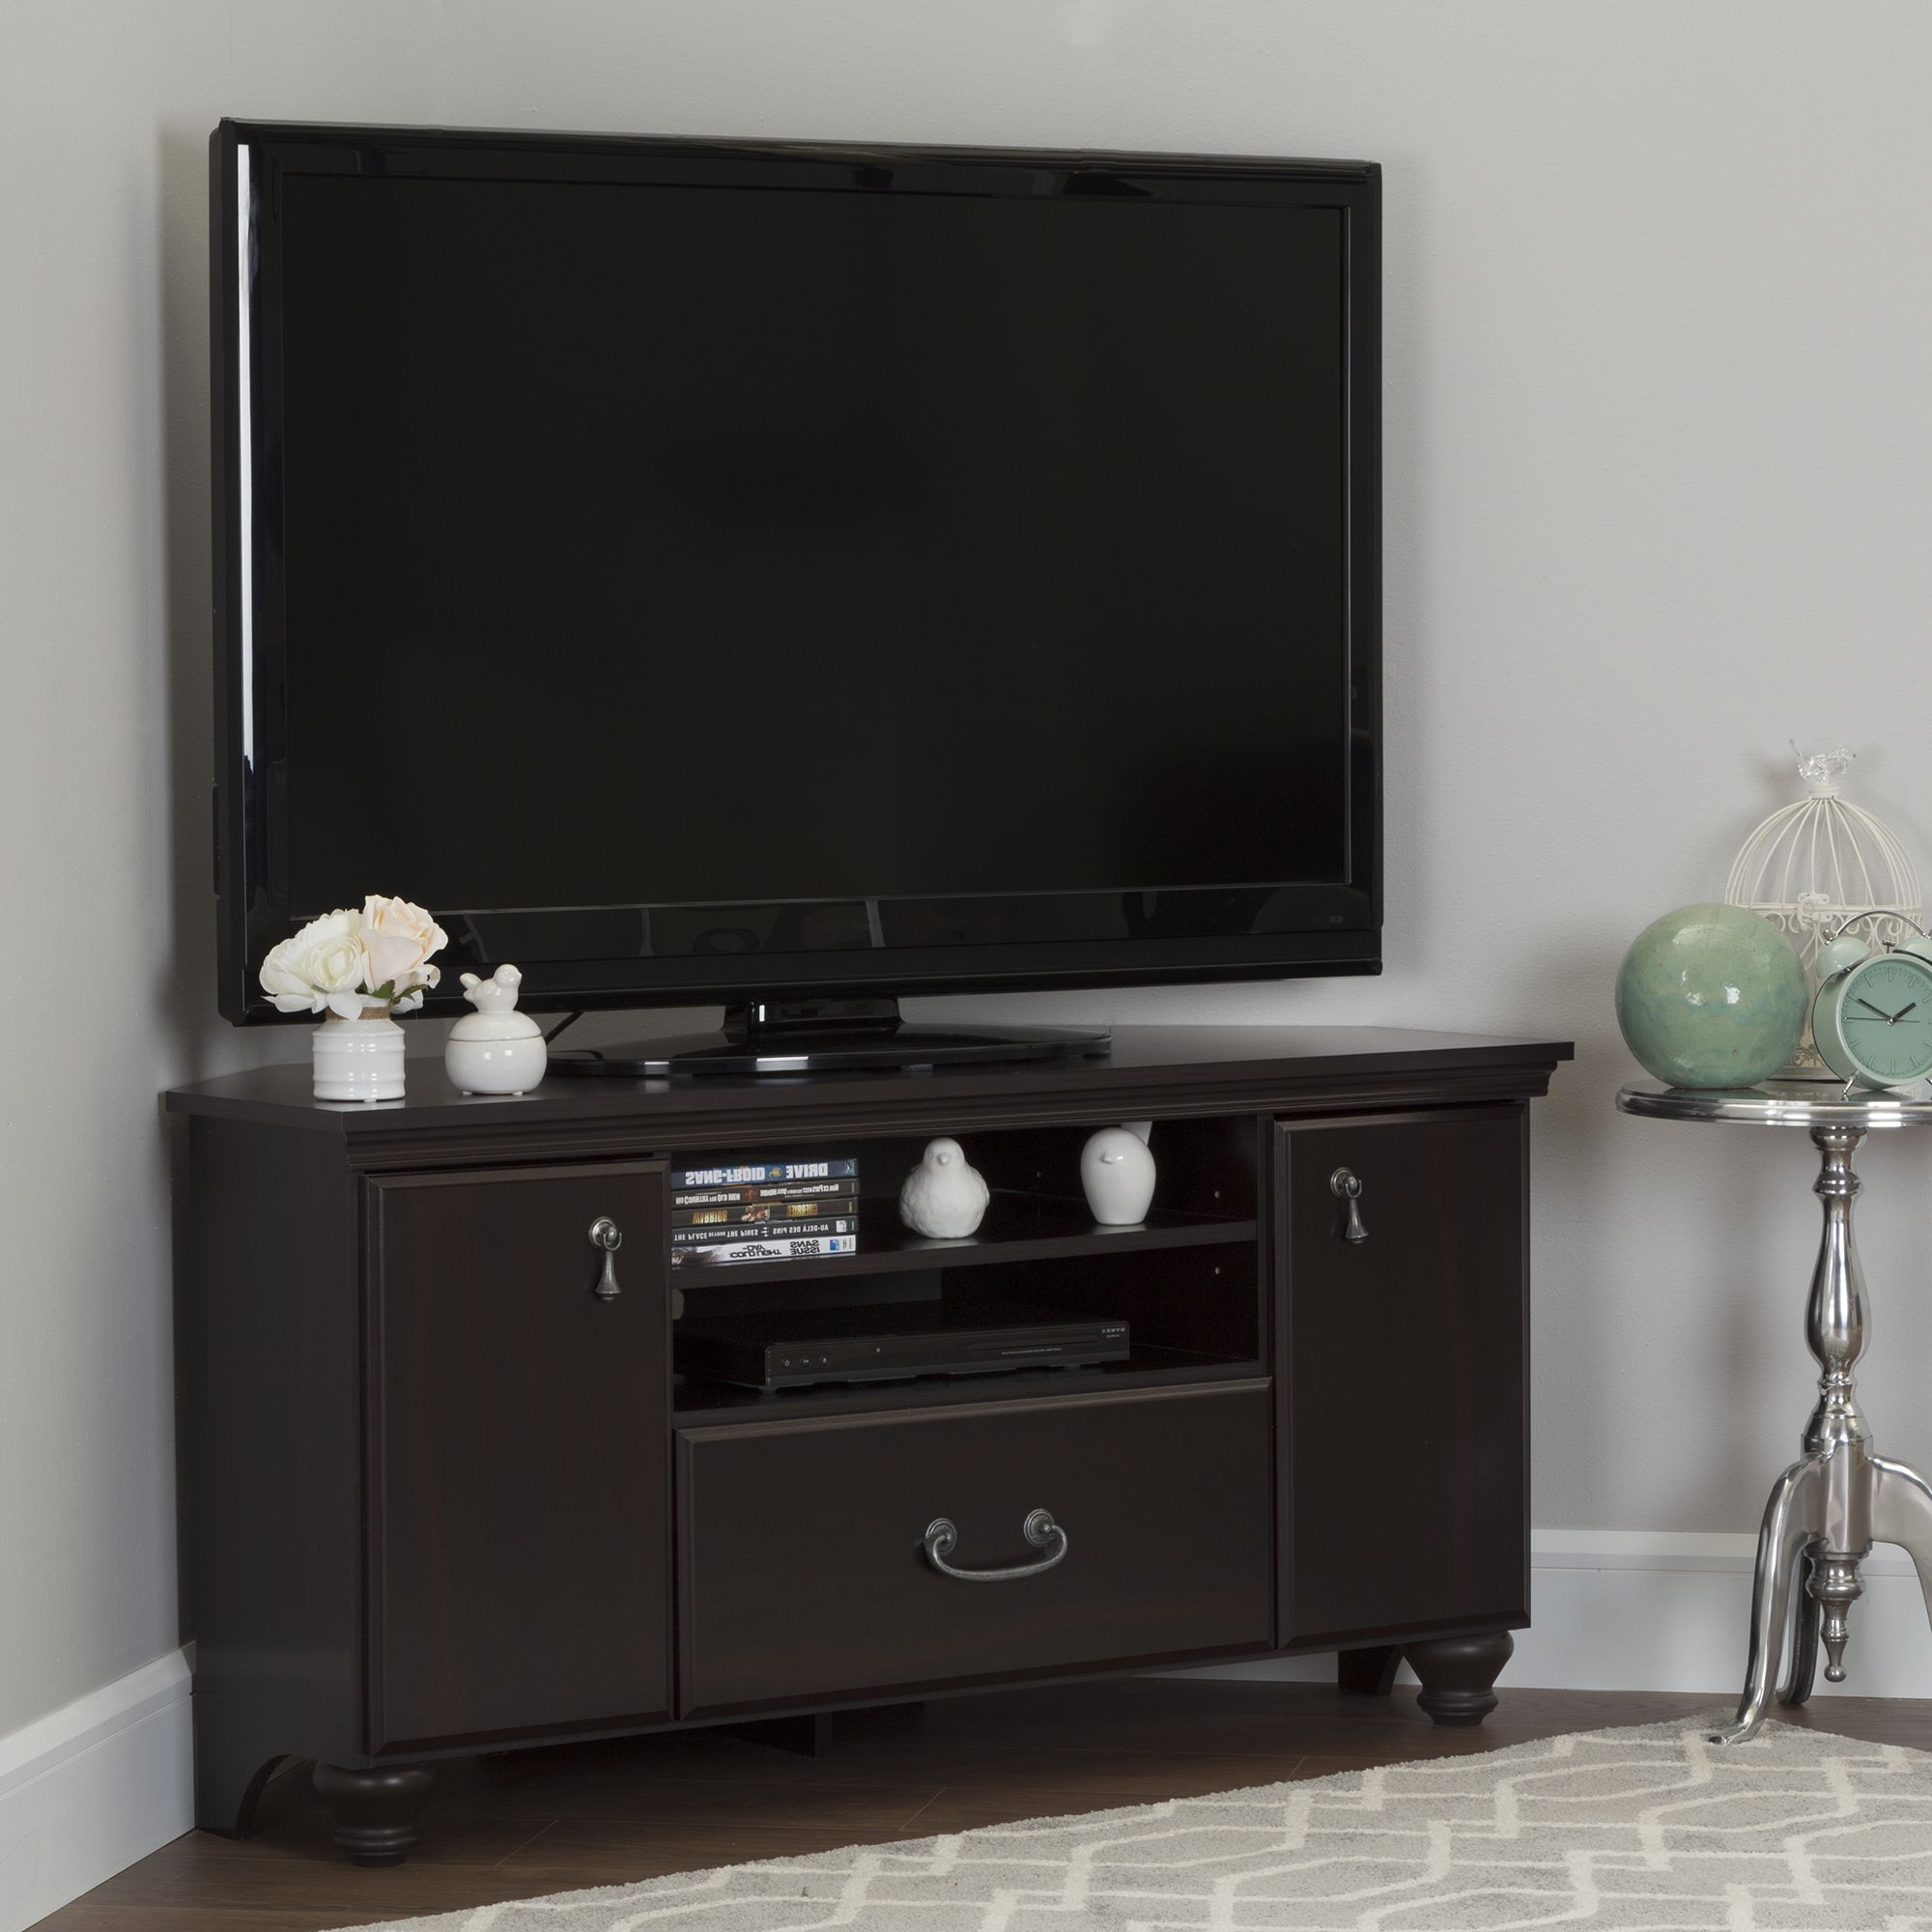 Pin On Home With Regard To Most Popular Woven Paths Transitional Corner Tv Stands With Multiple Finishes (View 3 of 10)